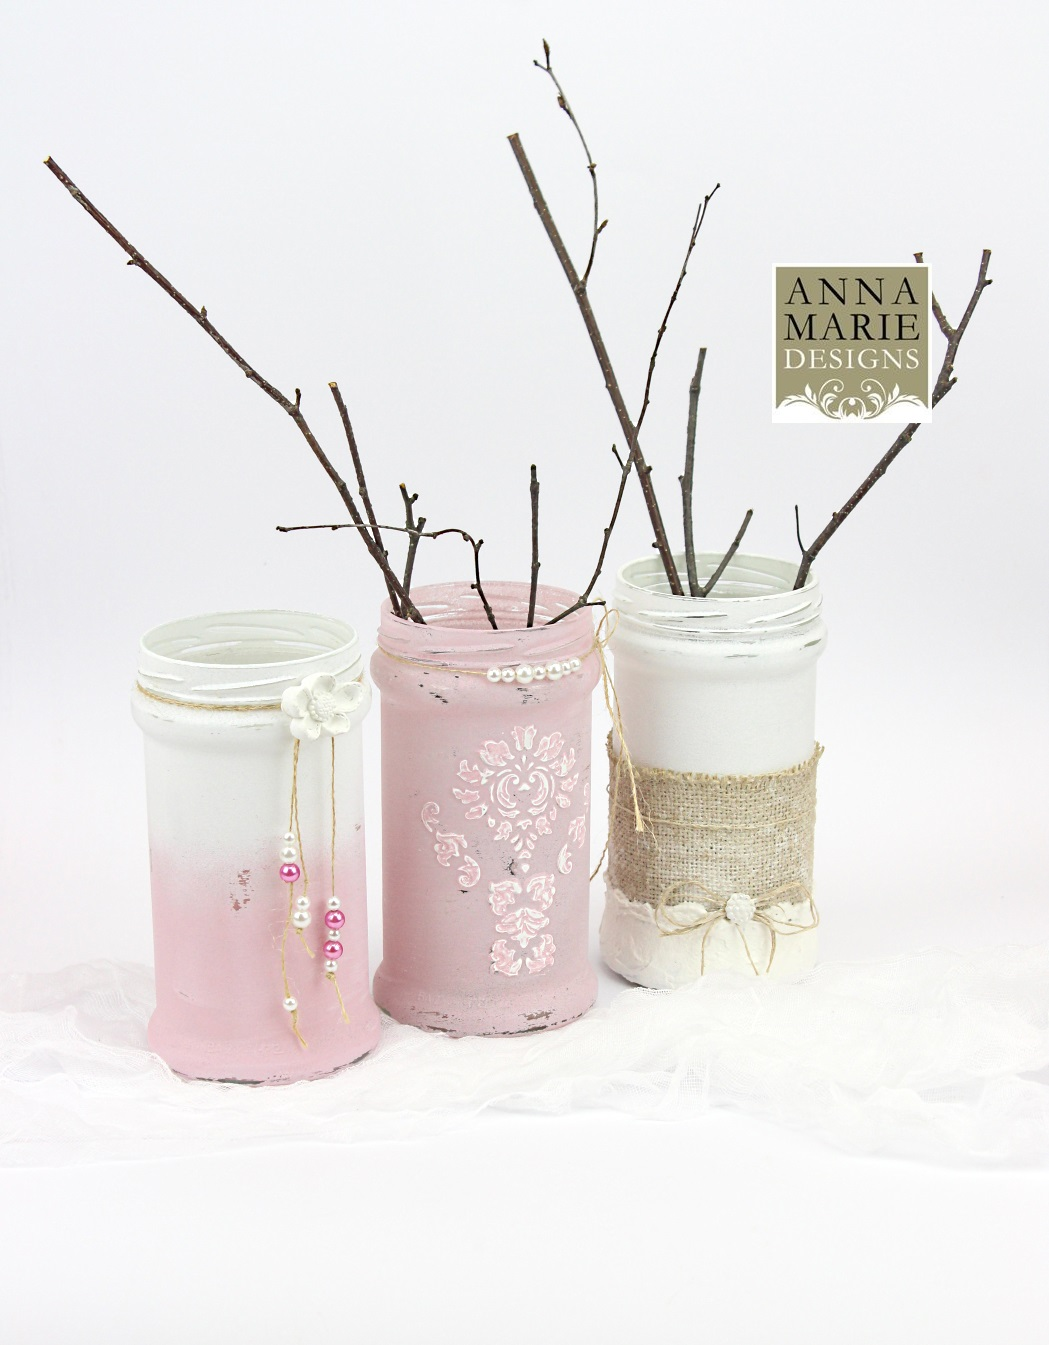 French style shabby chic vases - Anna Marie Designs